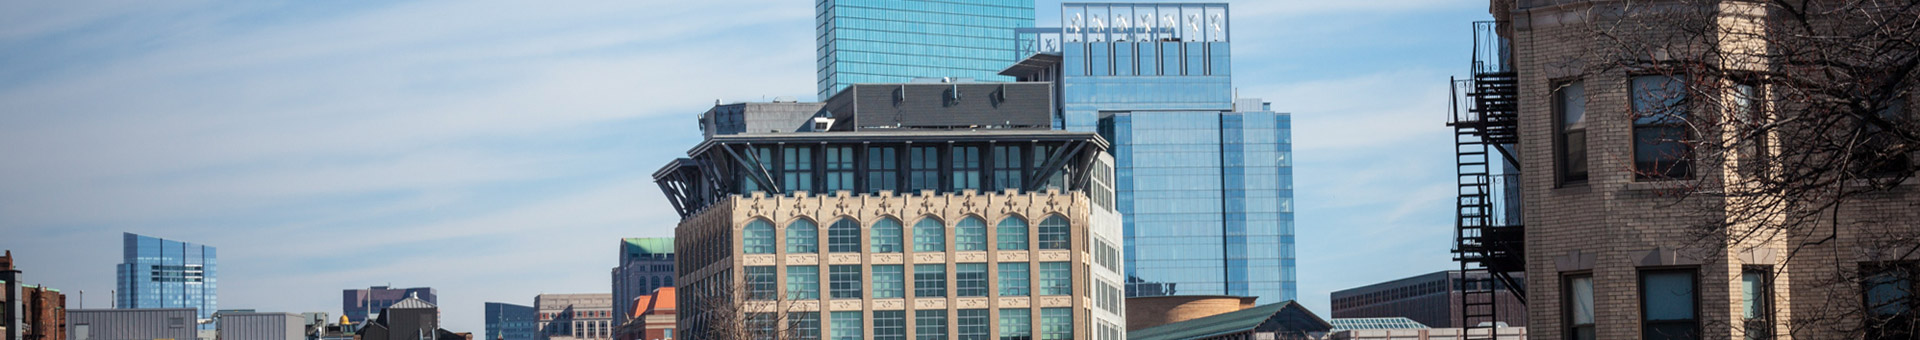 SCS Financial office building among Boston skyline